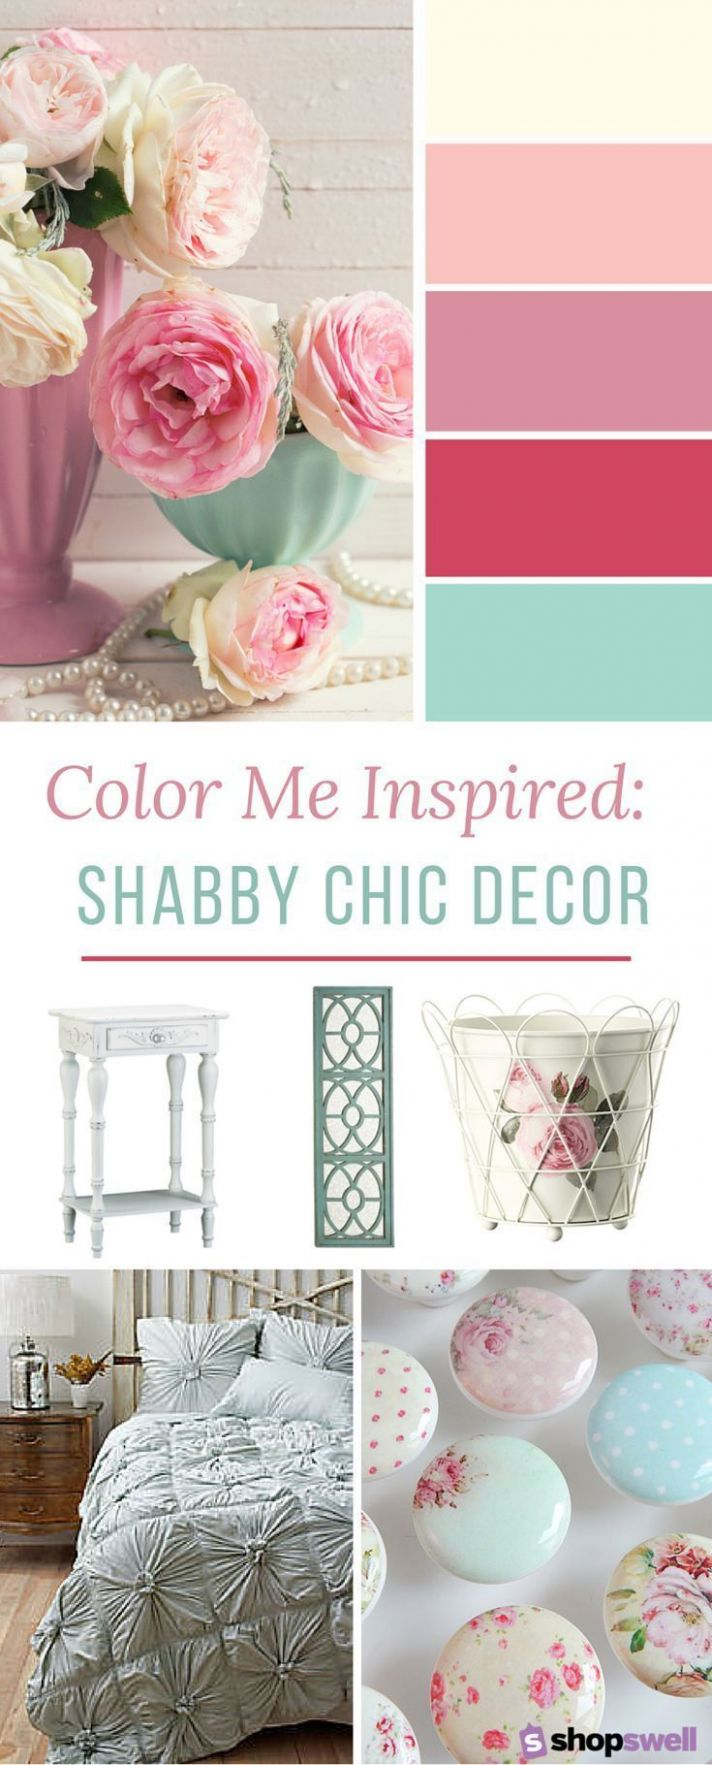 10 Home Decor Essentials for the Shabby Chic Bedroom in 1010 ...